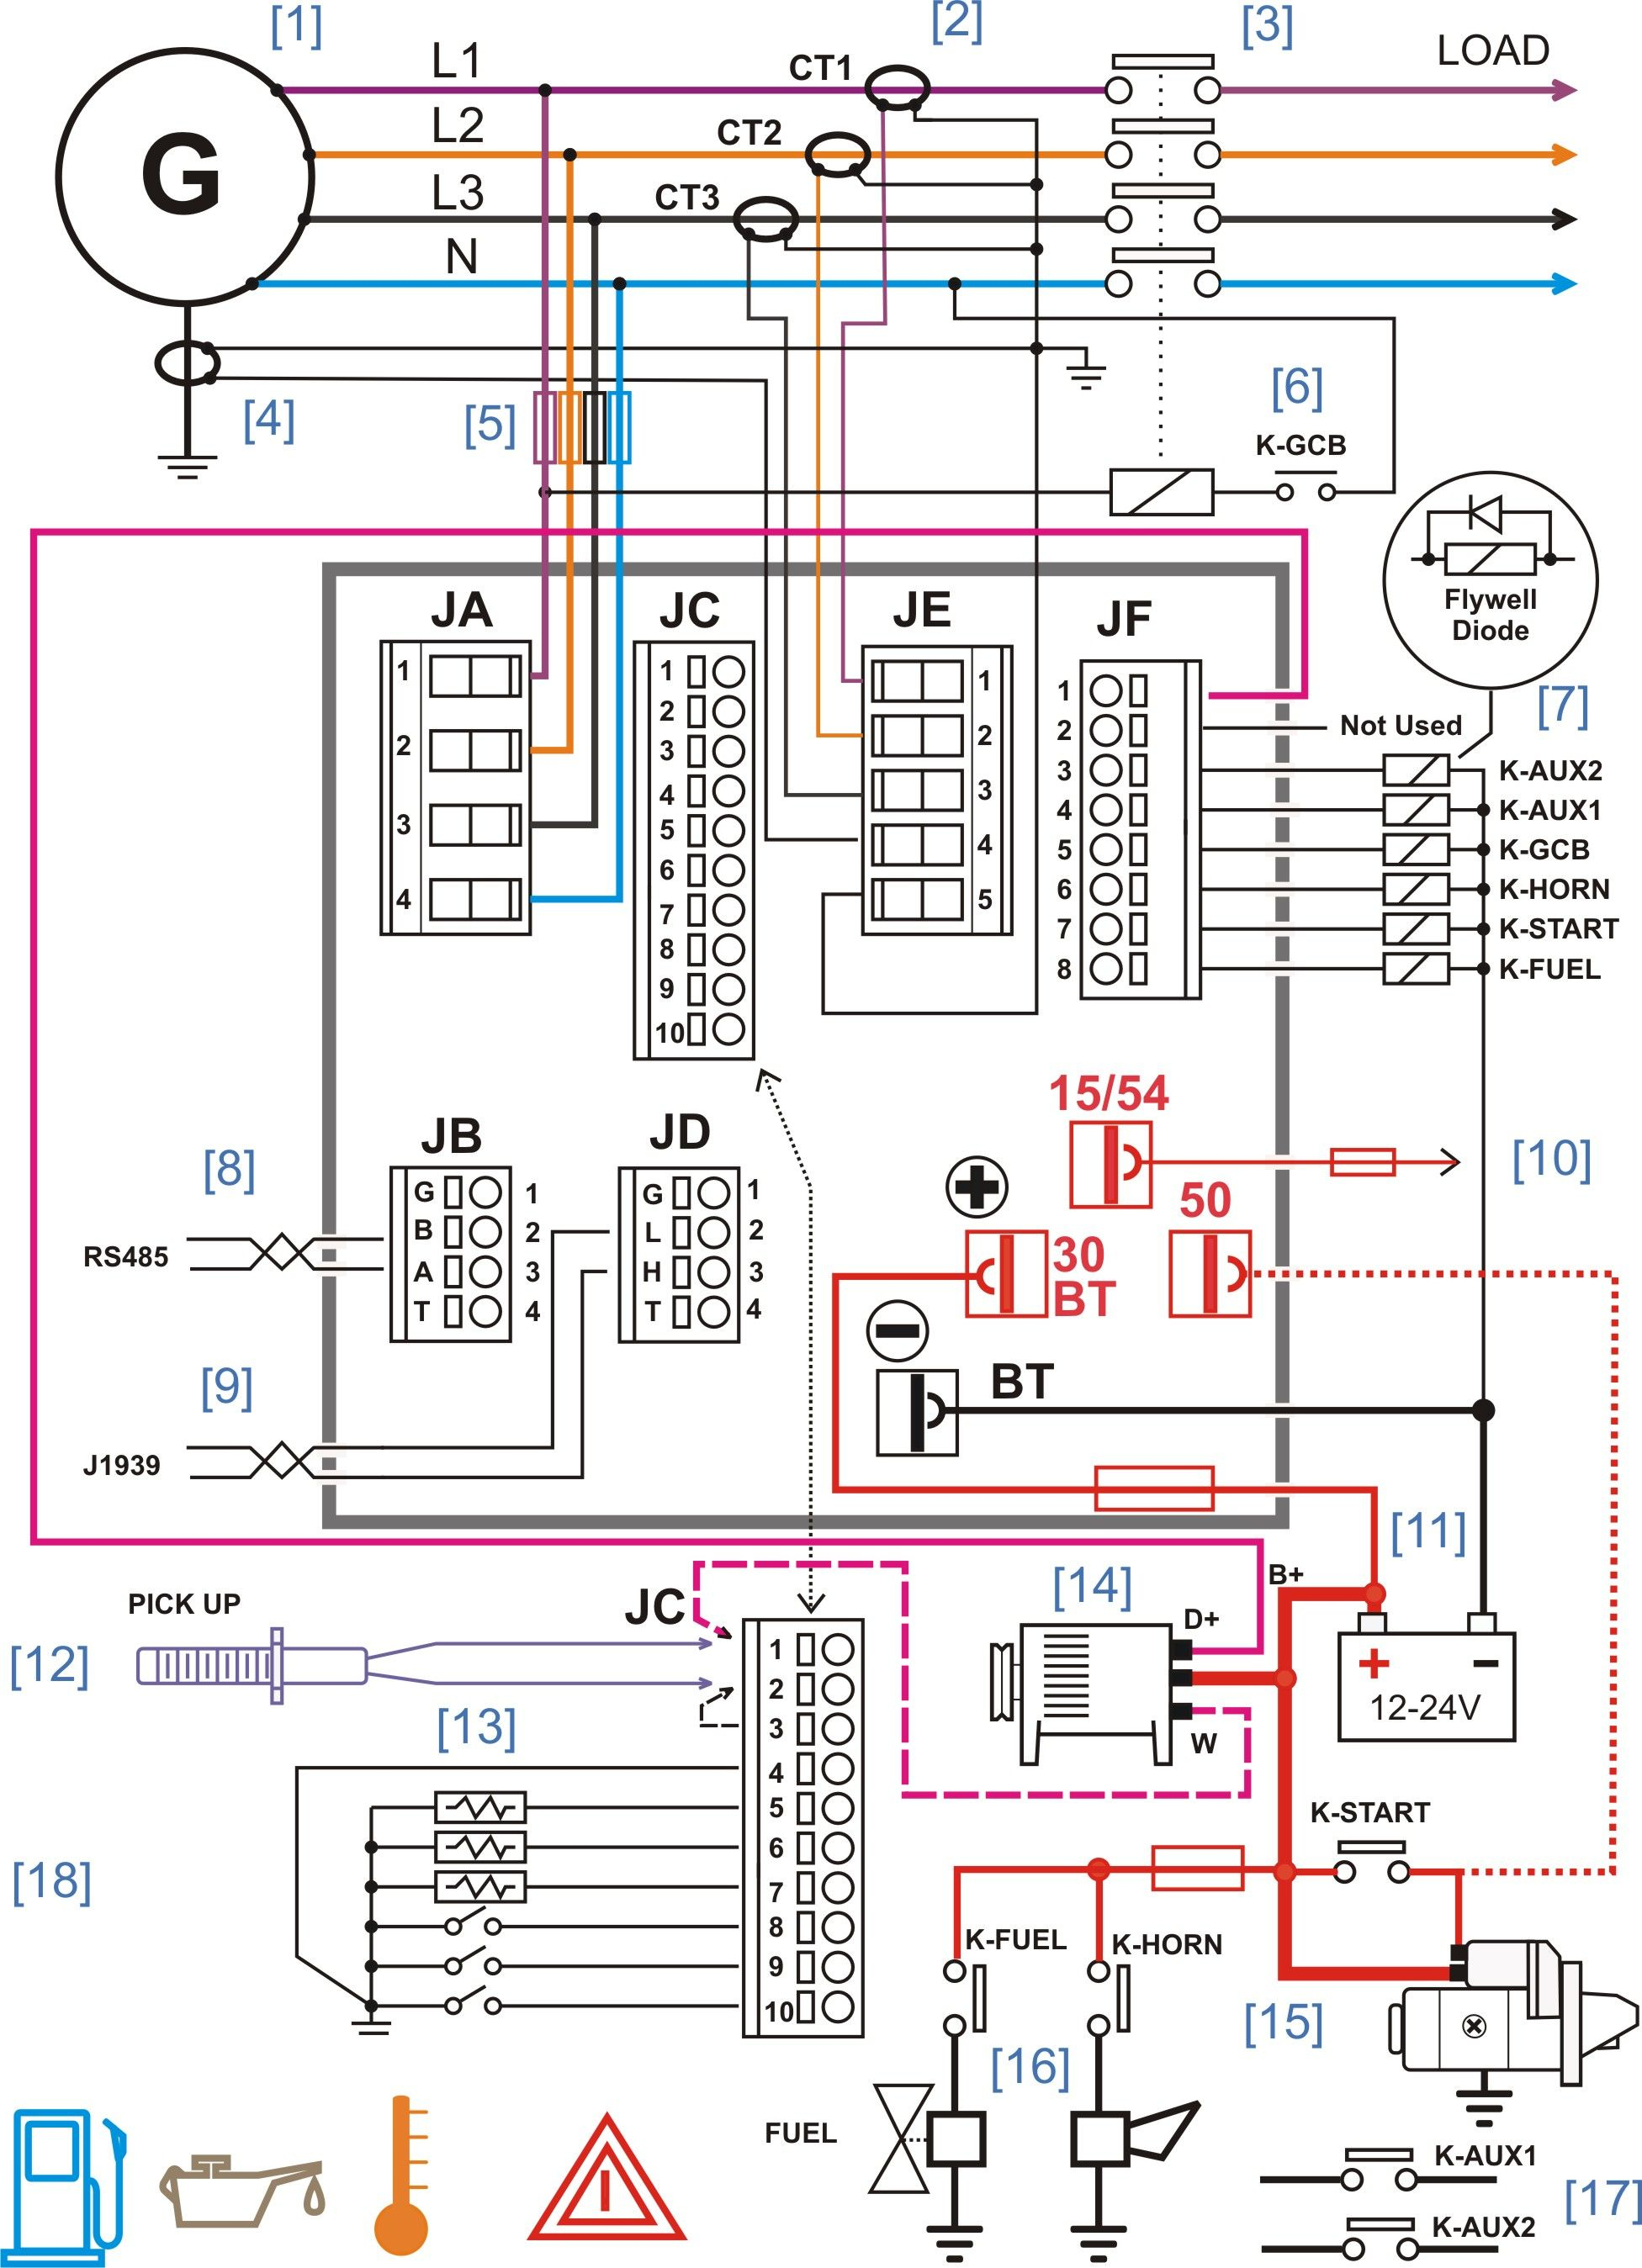 Marine Electrical Control Panel Wiring Diagram | Manual E-Books - Electrical Panel Wiring Diagram